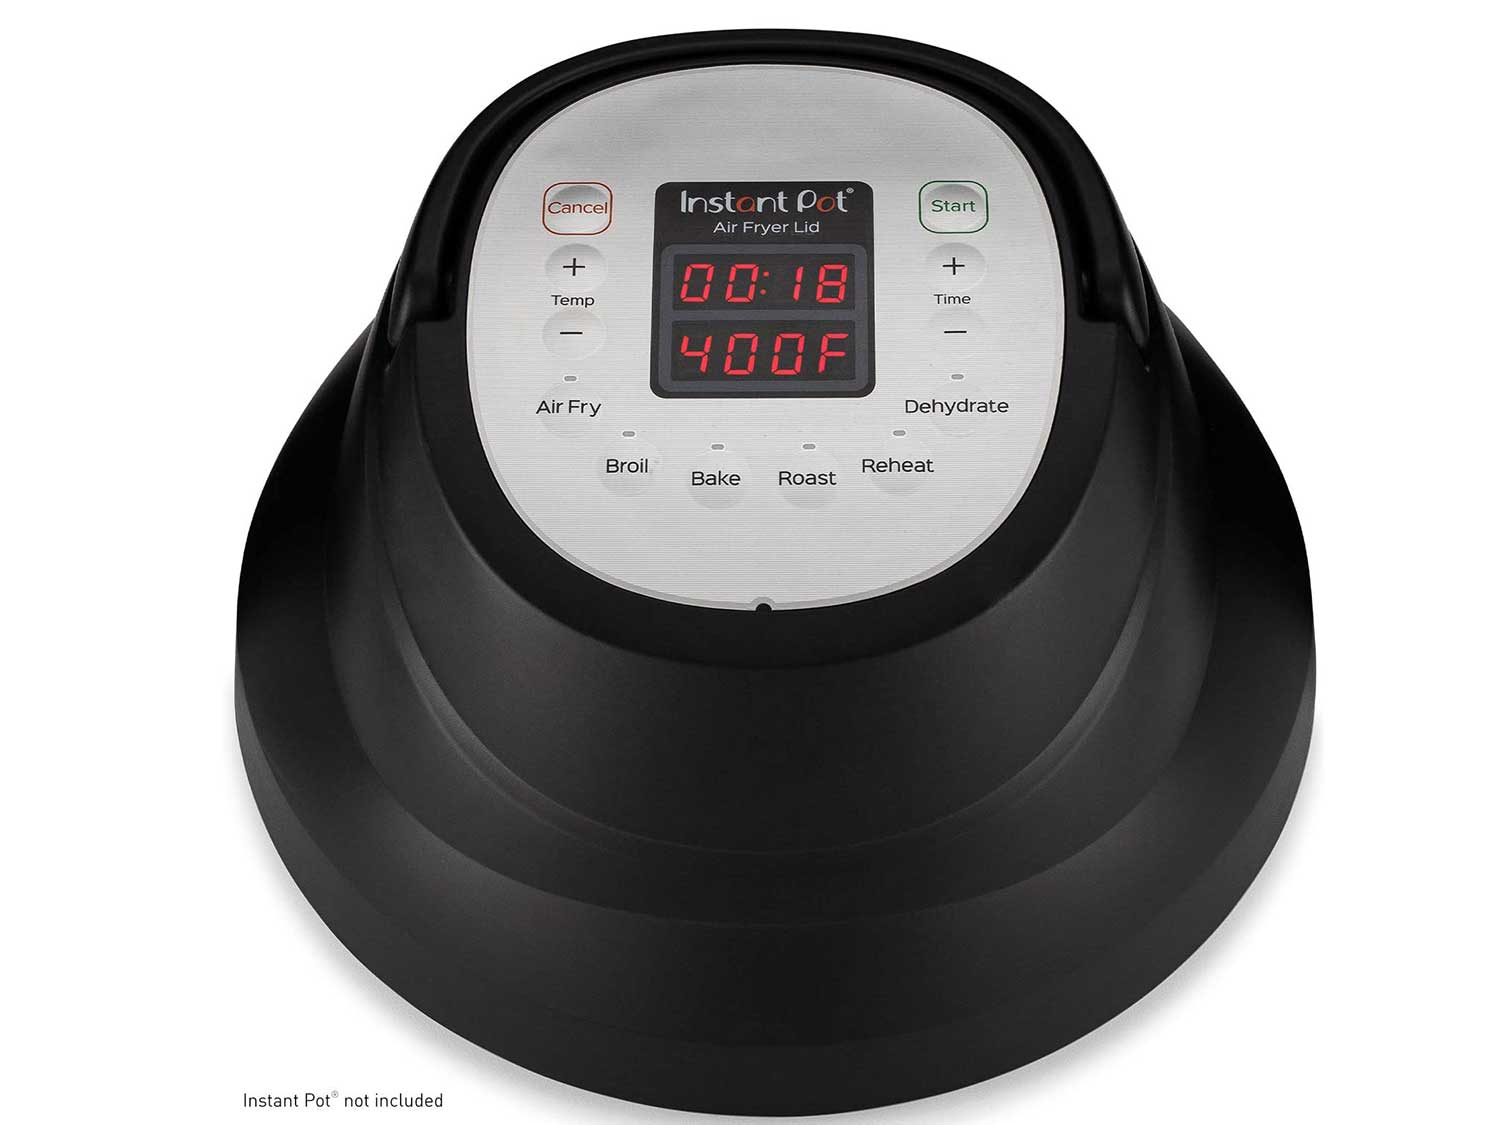 Instant Pot Air Fryer Lid 6 in 1, Turn your Instant Pot into an Air Fryer, 6 Qt, 1500W